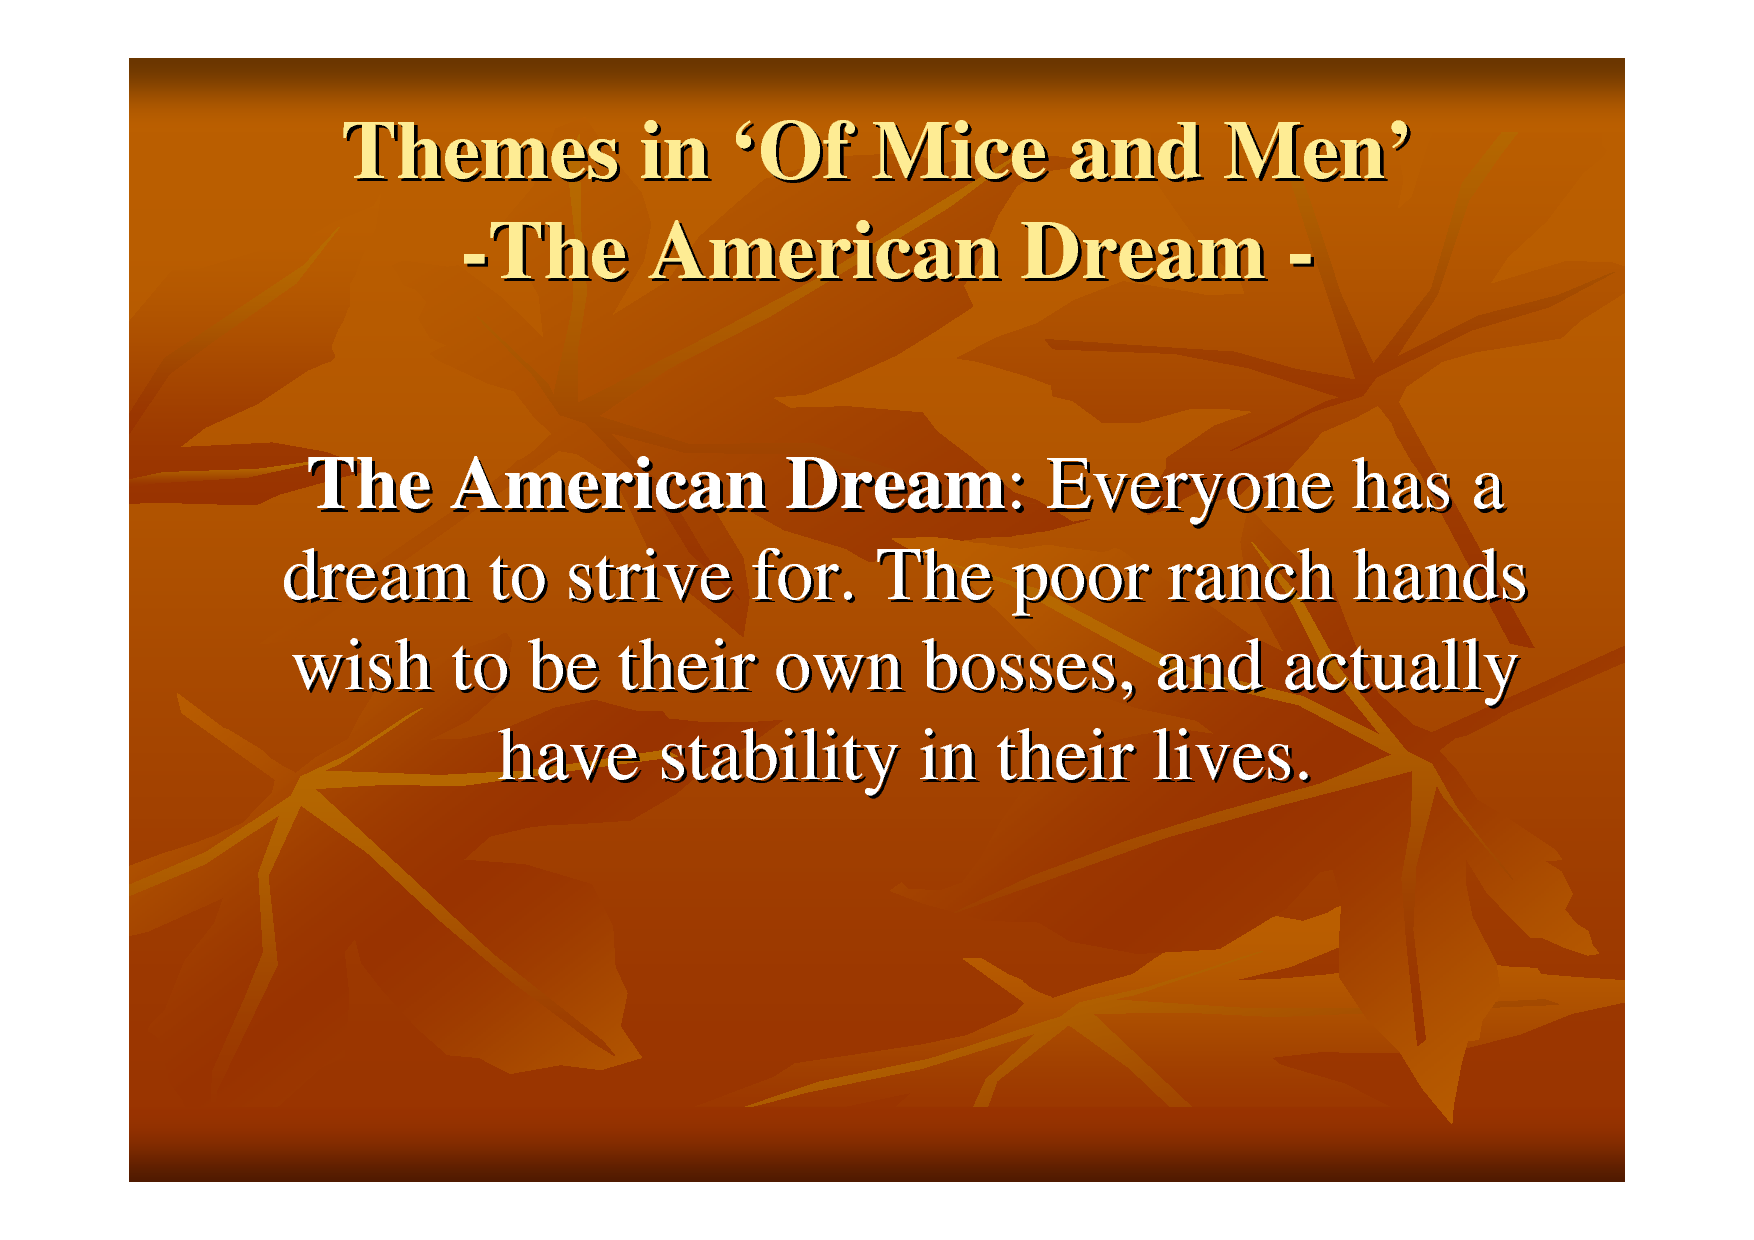 of mice and men essay on dreams american dream What is the importance of dreams in of mice and men this links to the american dream go get key quotations and more model essays for of mice and men here.